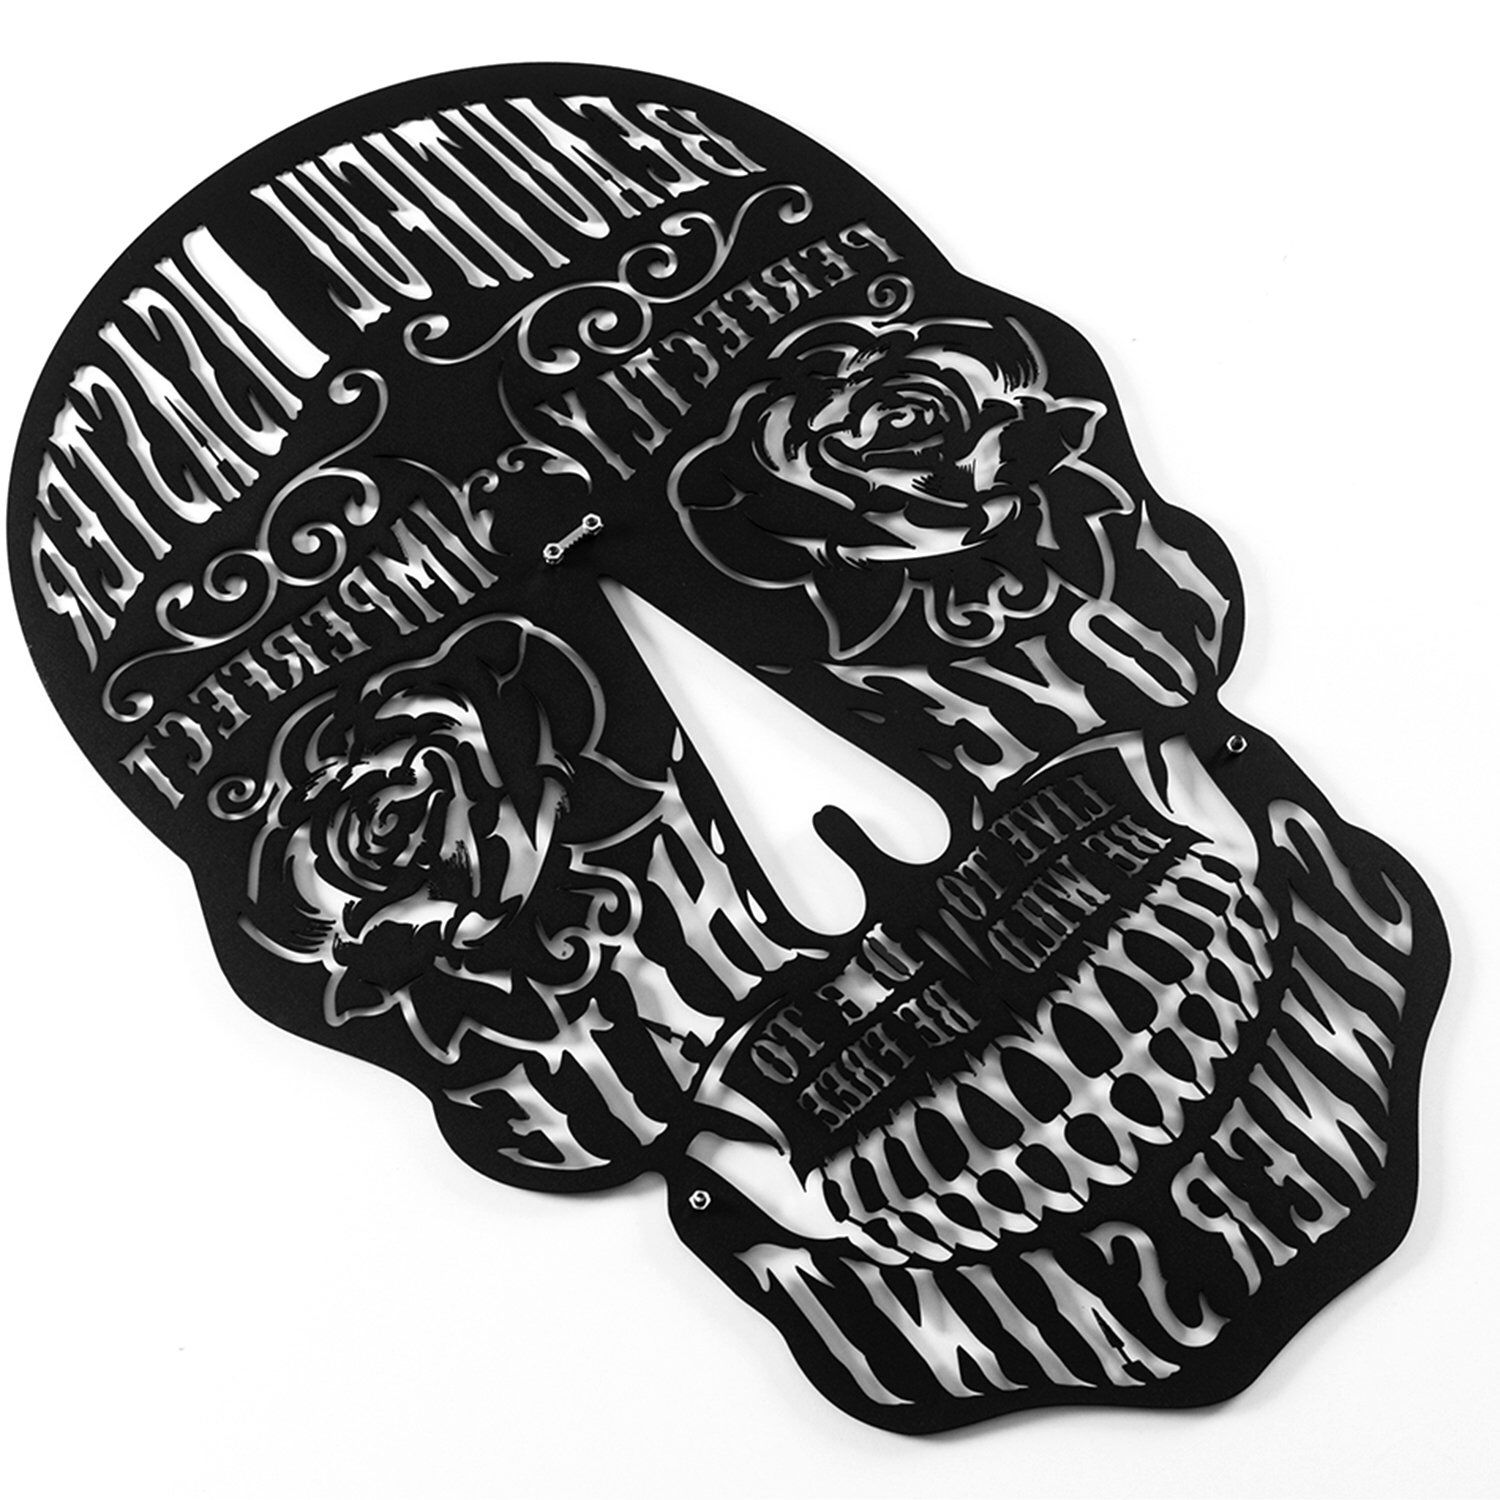 Ditcowest metal wall art skulls perfectly imperfect